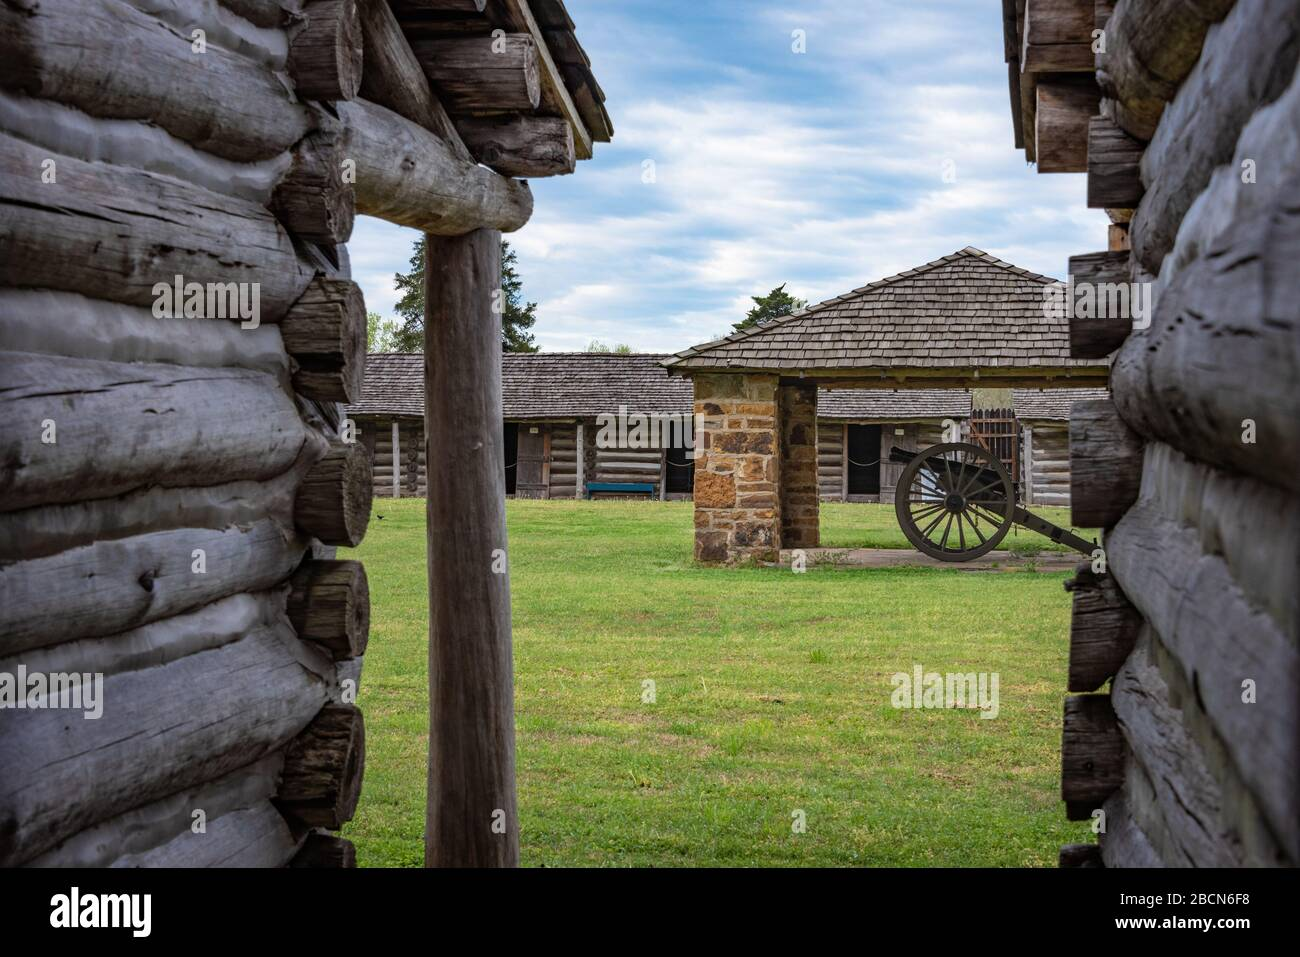 Inside the stockade at Fort Gibson, a historic military site in Oklahoma that guarded the American frontier in Indian Territory from 1824 until 1888. Stock Photo